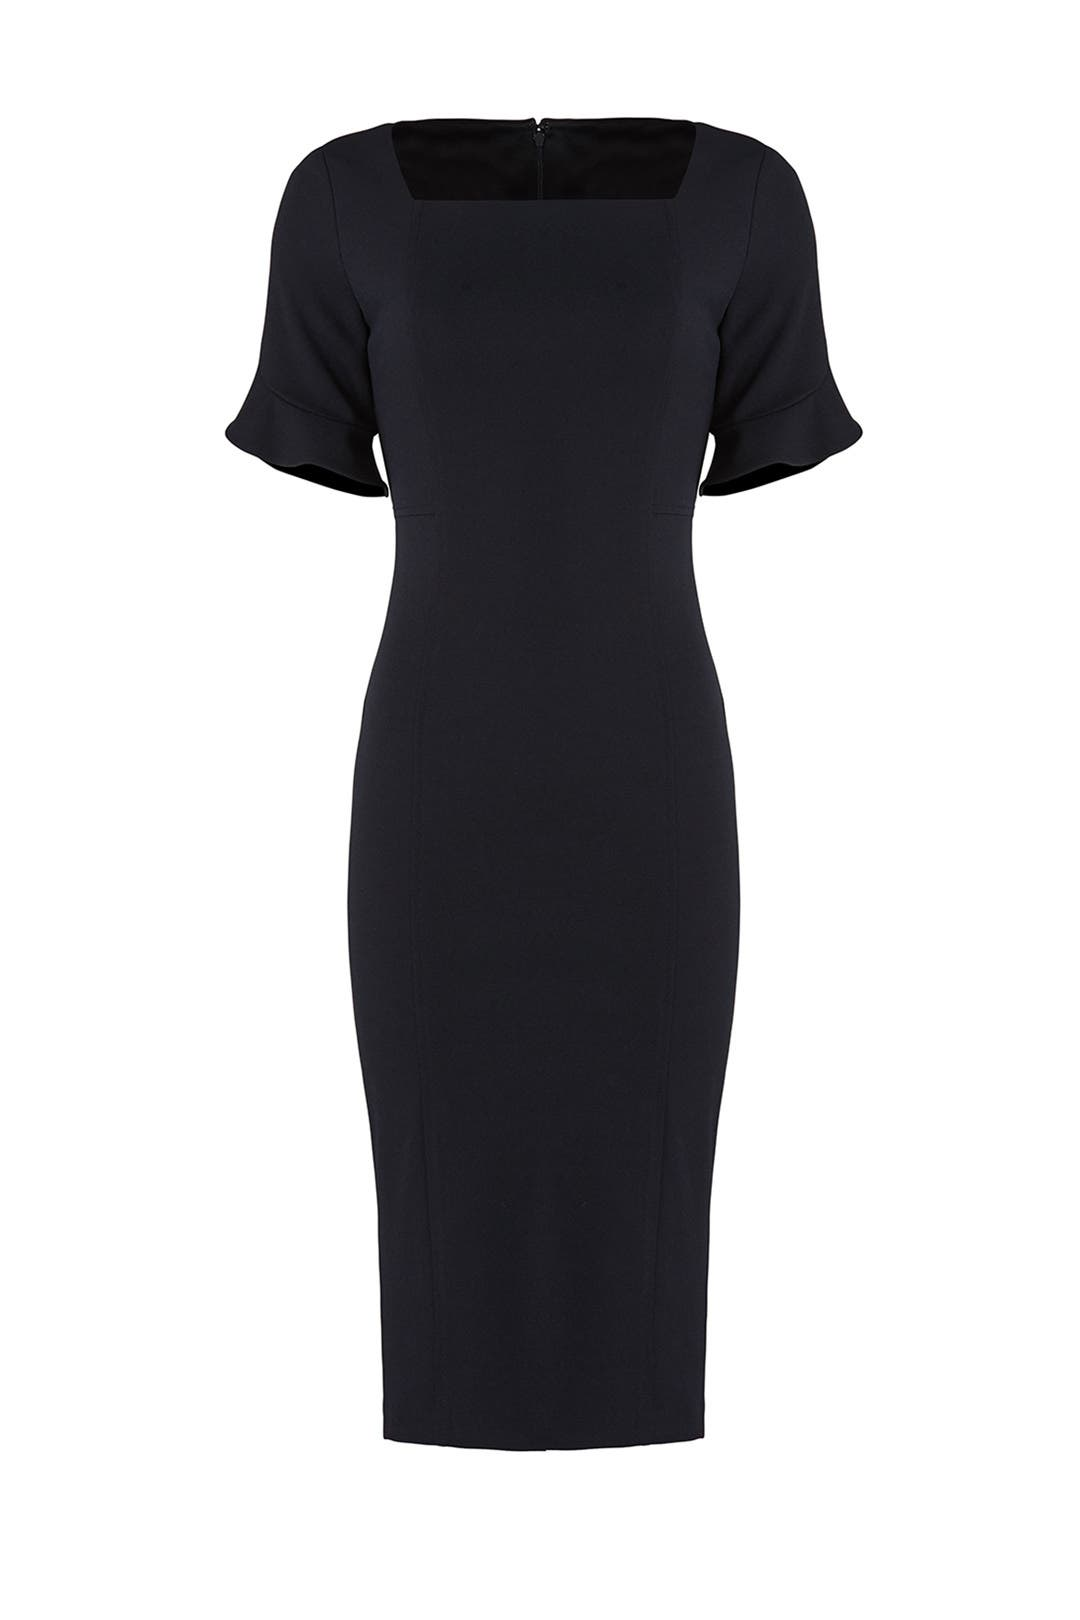 d1b02002bc25 Navy Square Dress by Donna Morgan for $30   Rent the Runway